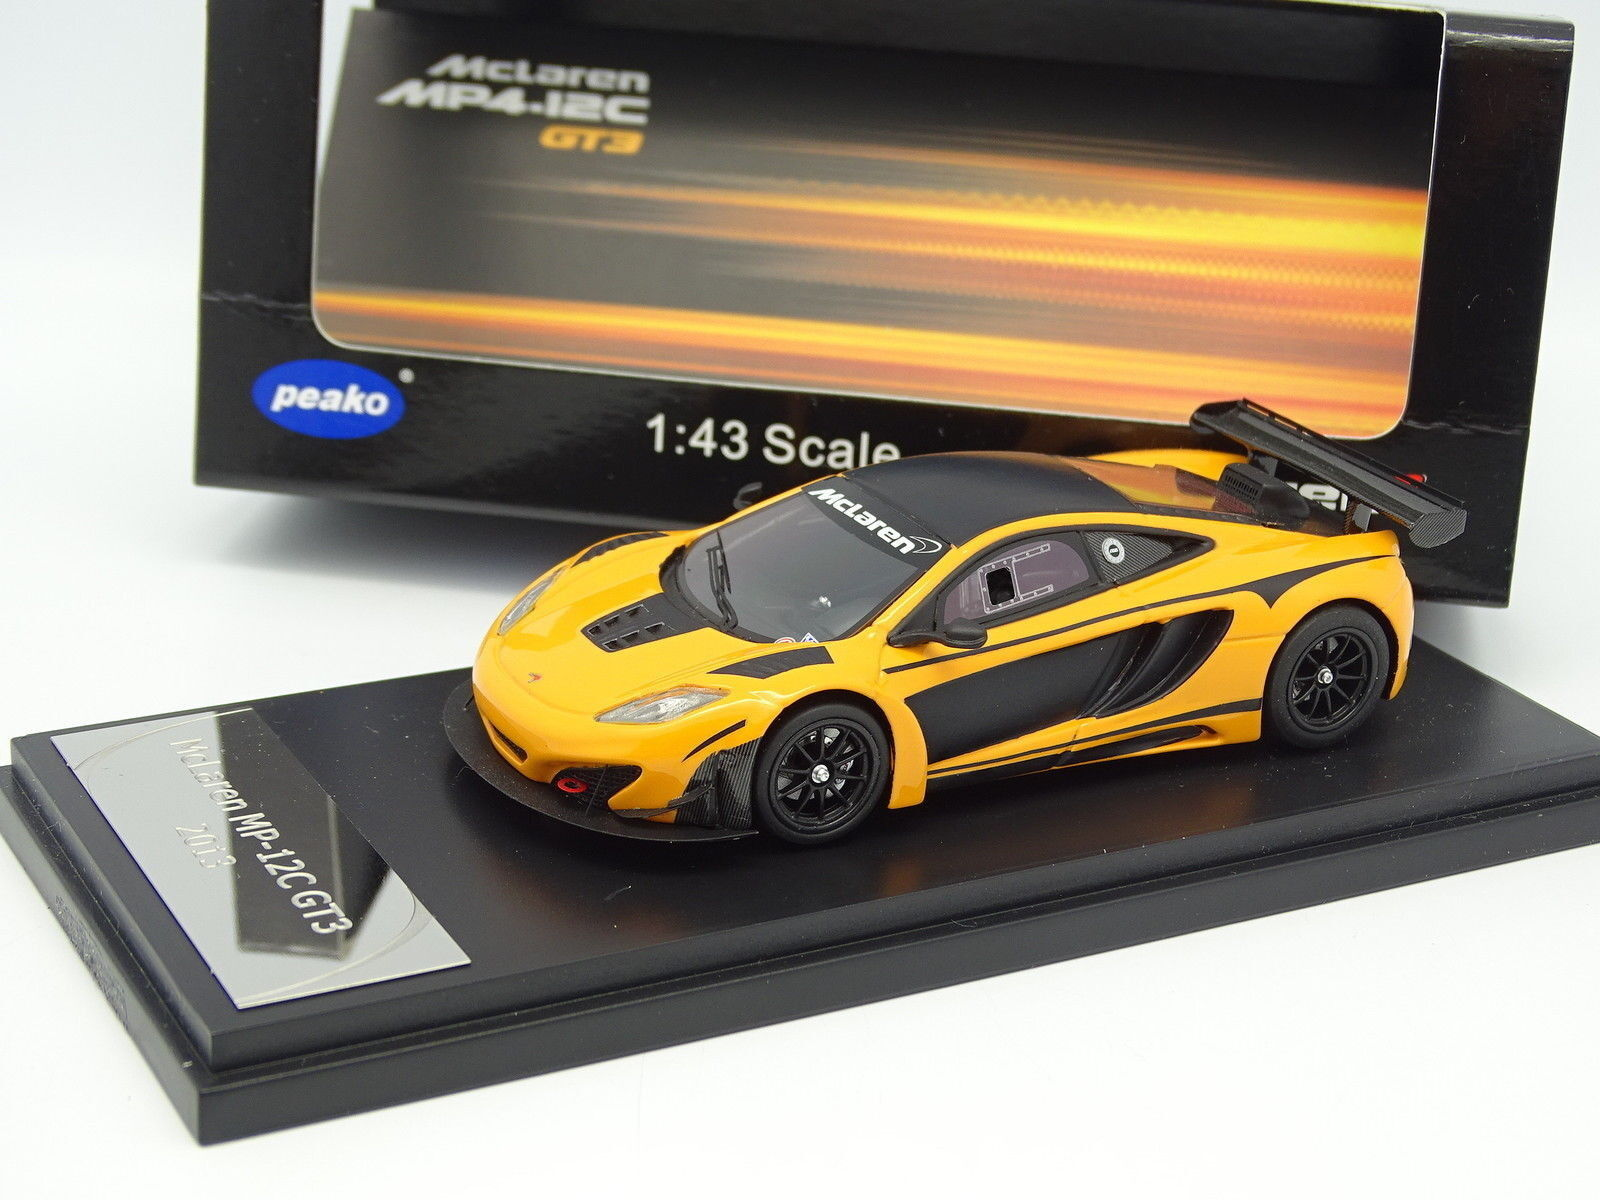 Peako Resin 1 43 - McLaren MP4-12C GT3 2013 Orange